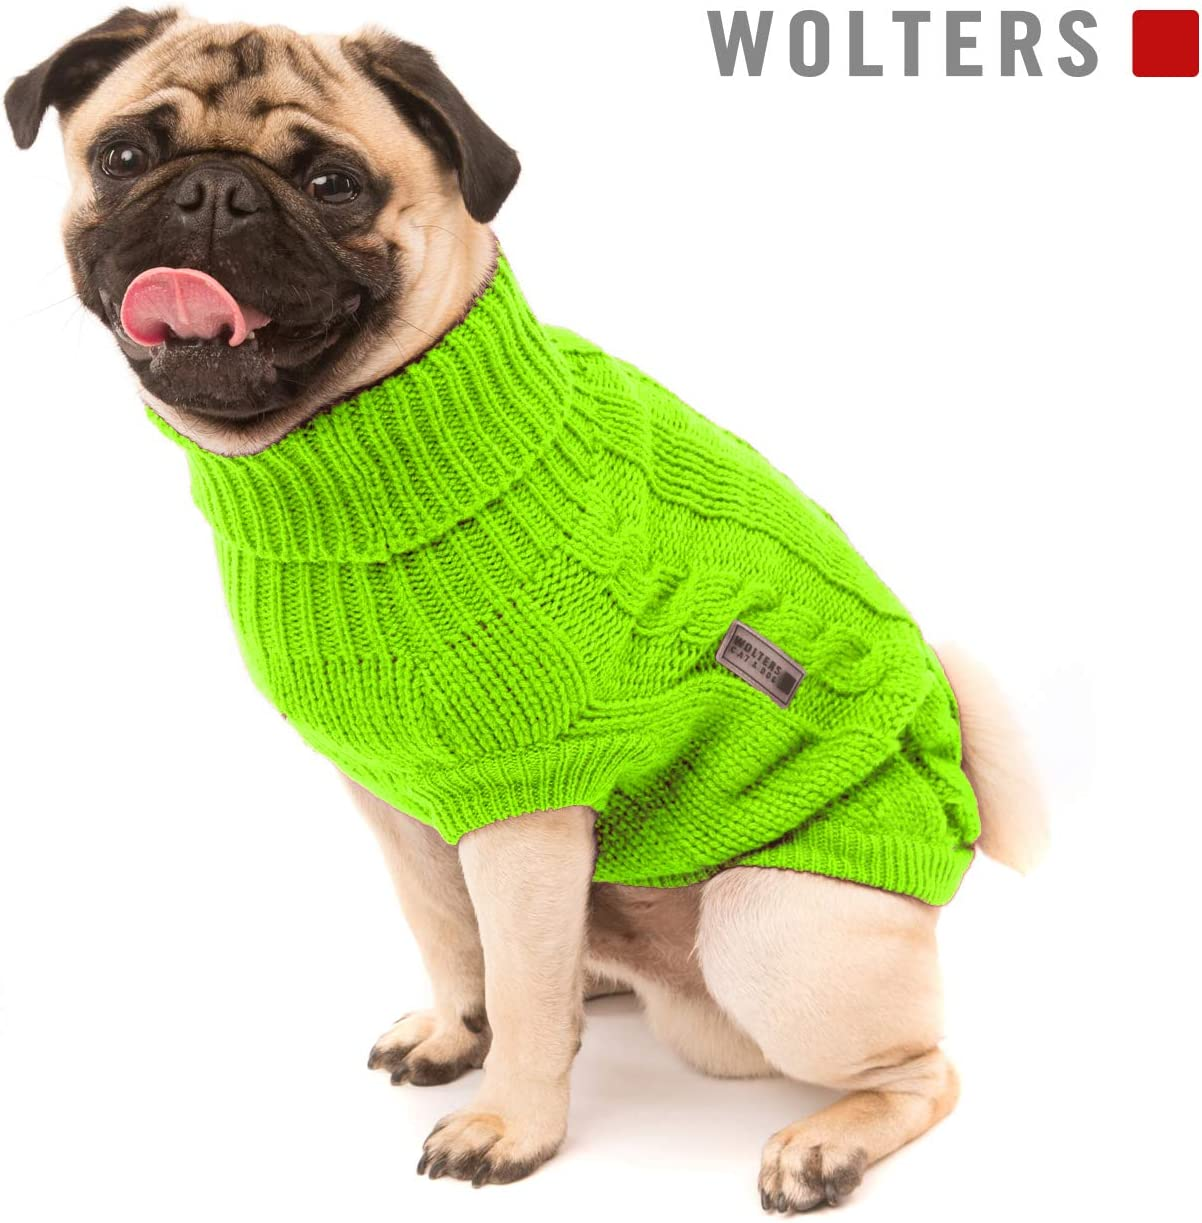 Hunde Pullover Hundebekleidung Lime Wolters Zopf-Strickpullover f/ür Mops /& Co